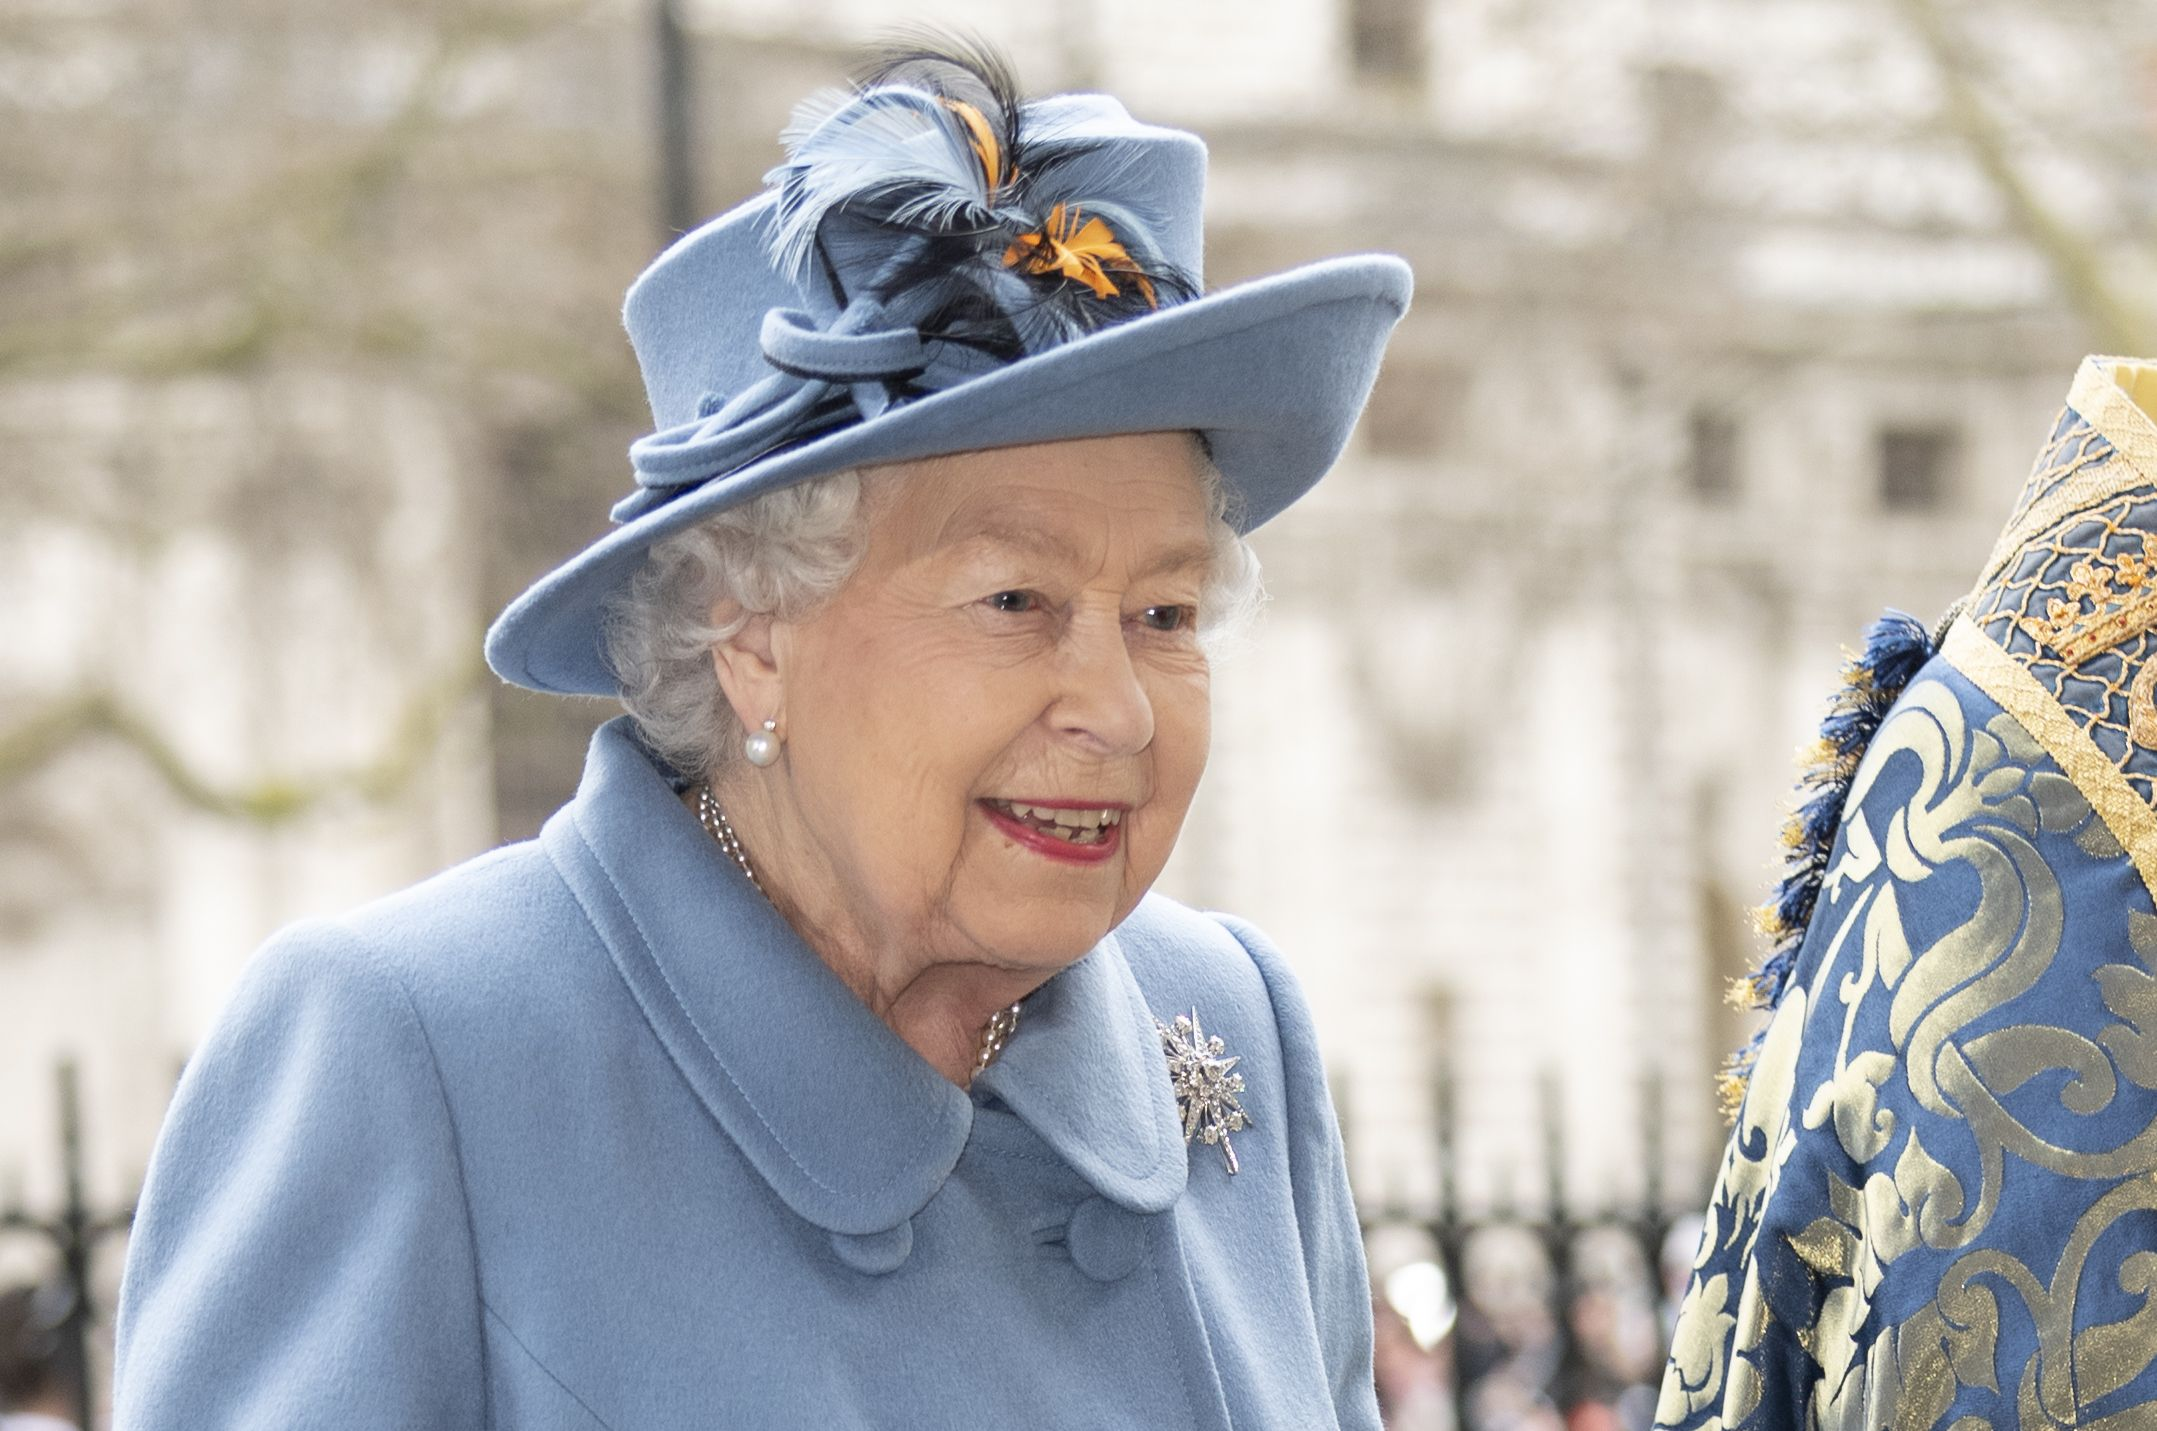 The Queen is apparently isolating with 22 others in lockdown